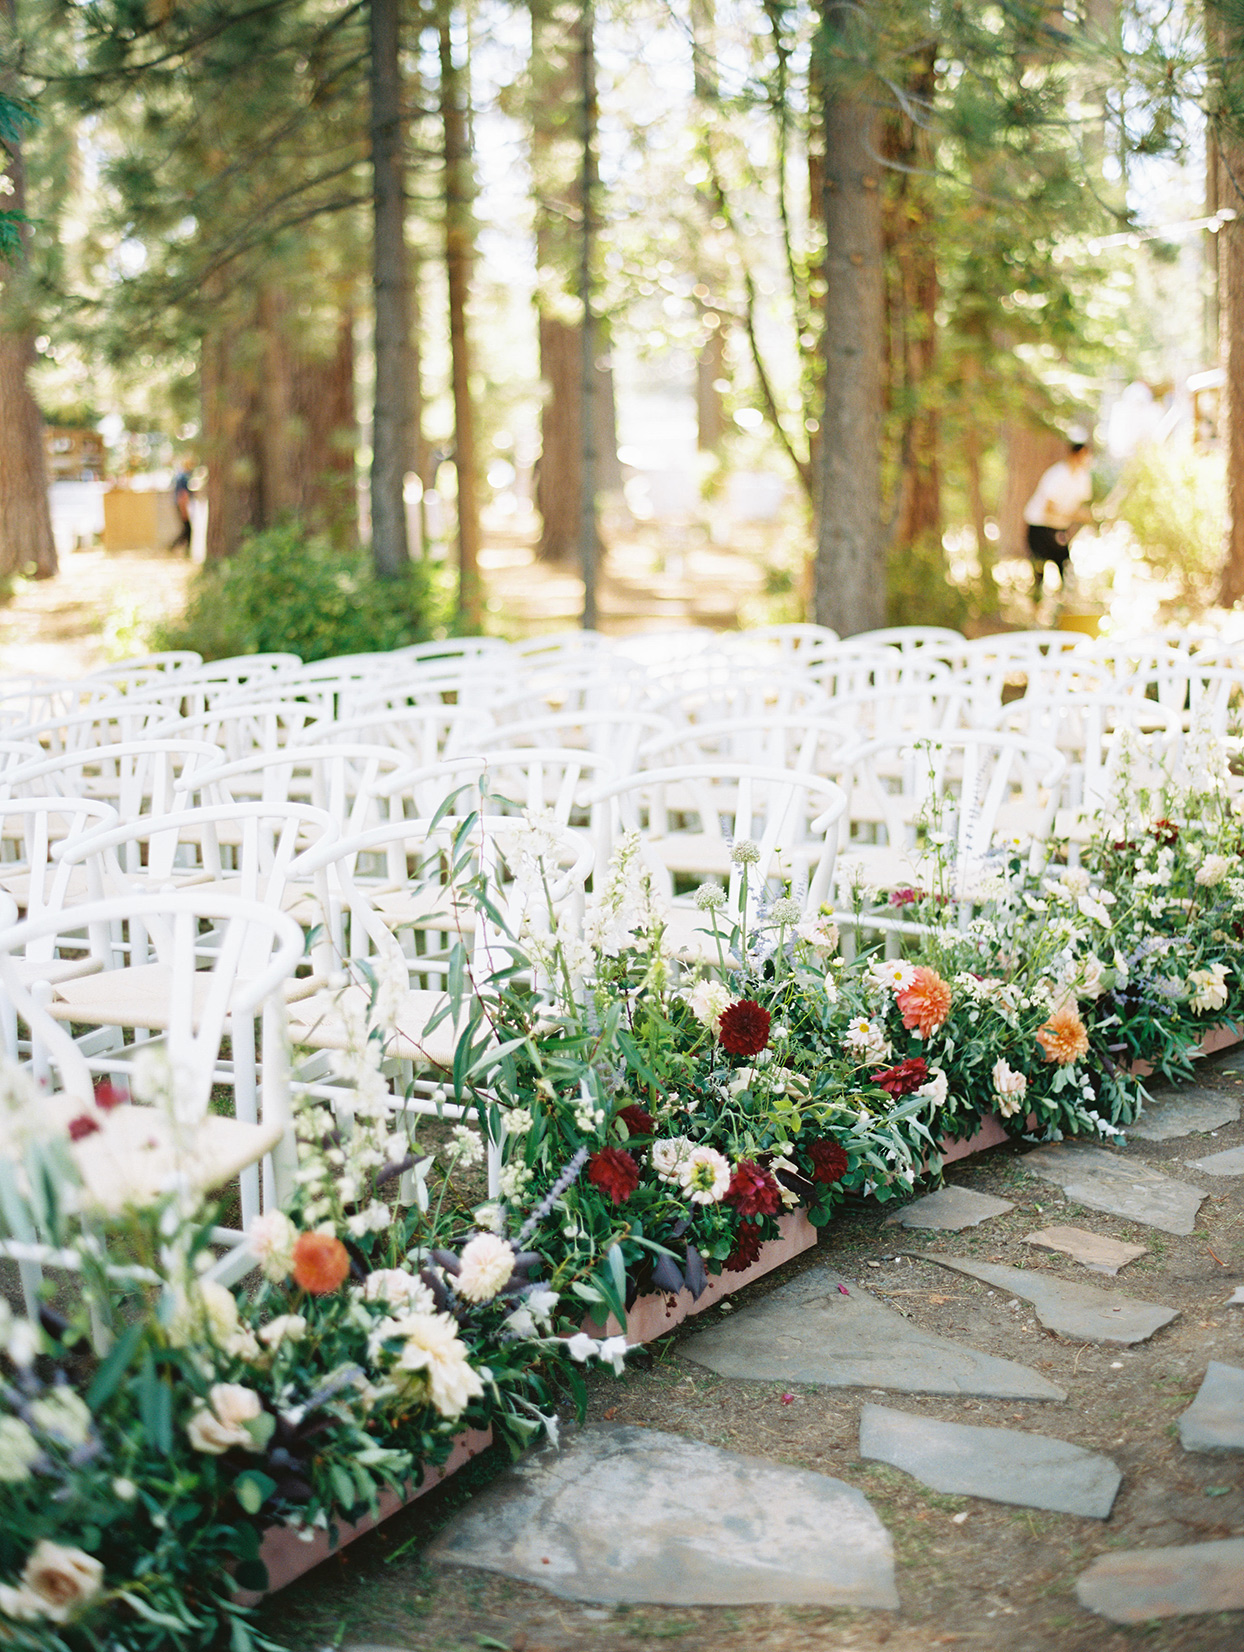 white chairs set up for wedding ceremony with wildflowers lining the aisle